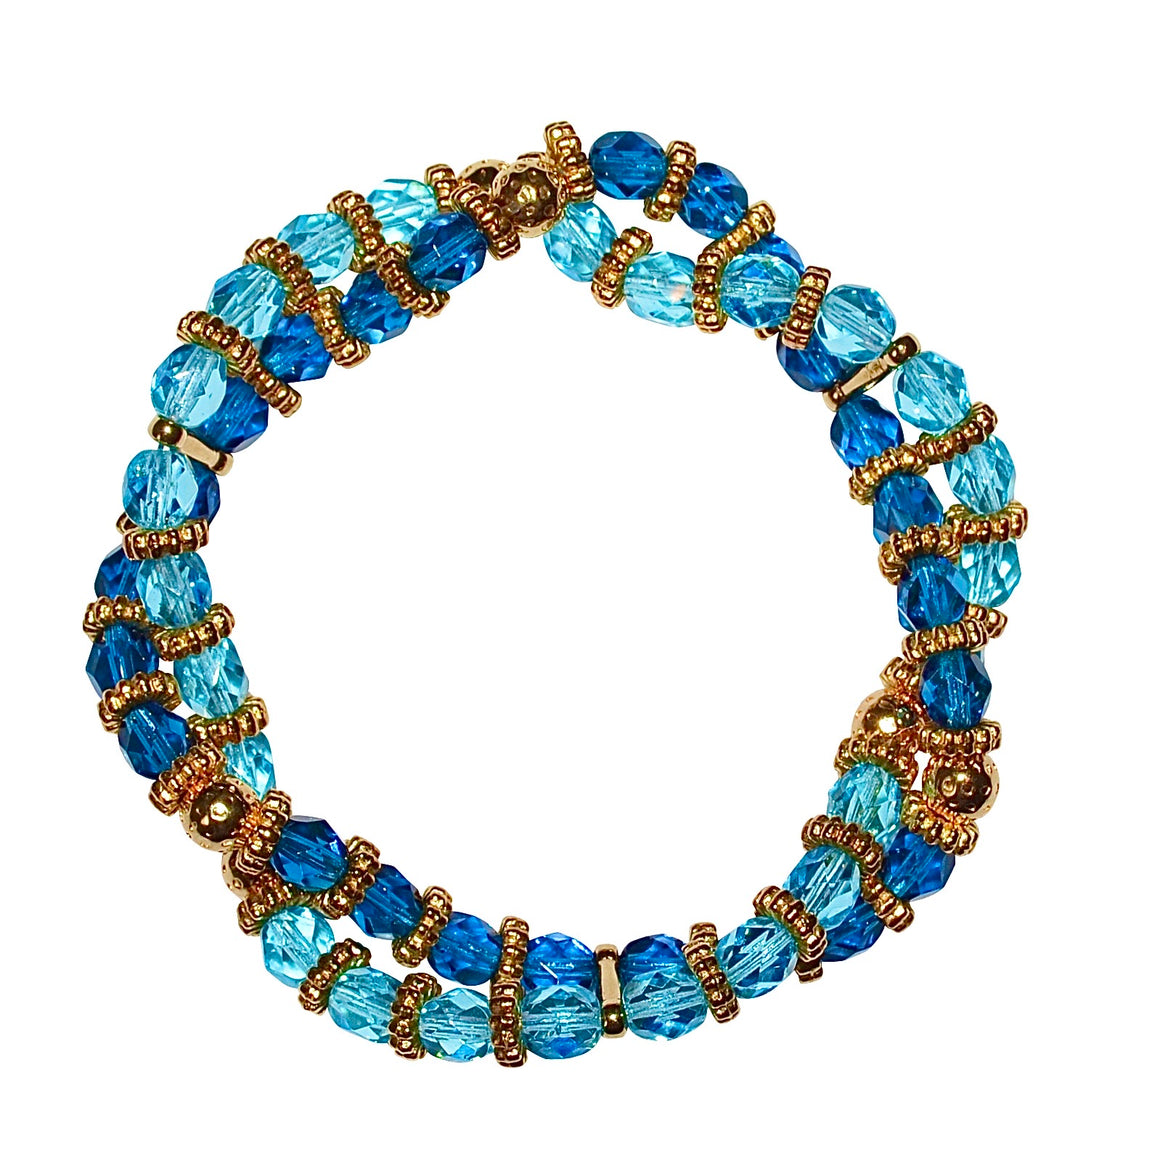 BIANCA LUCITE TWISTED BRACELET IN AQUA